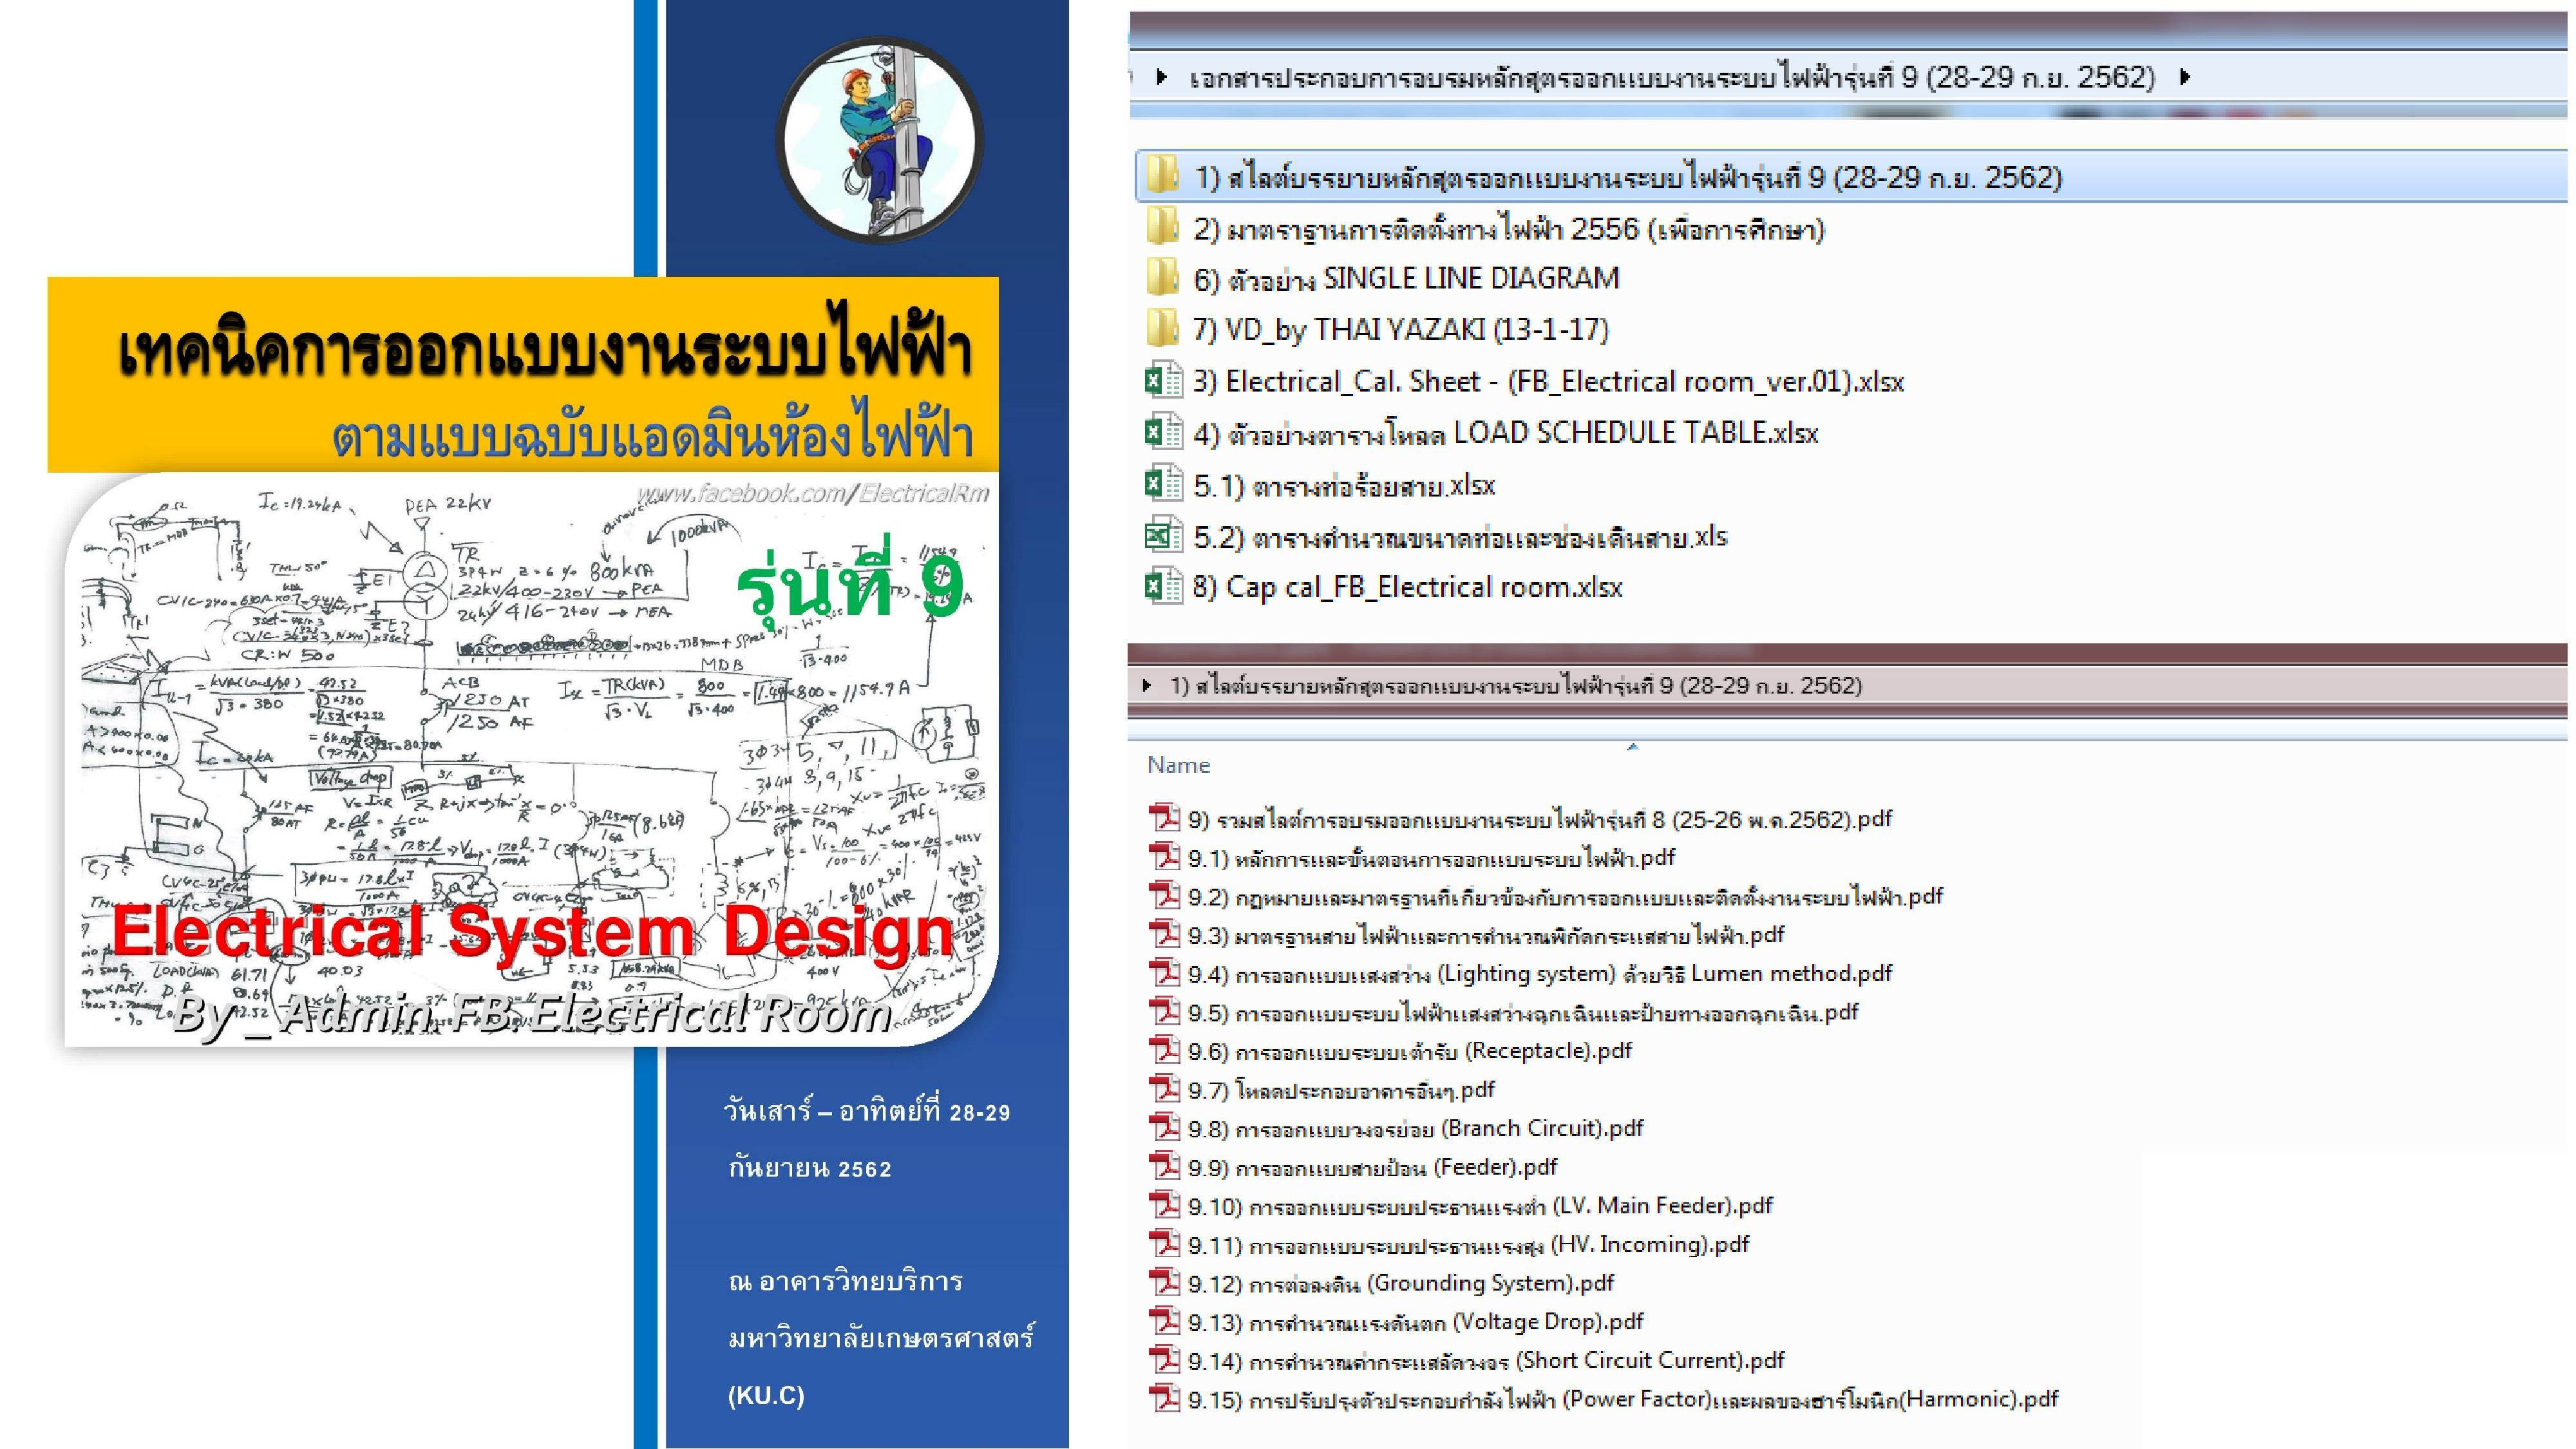 123-page-001 (1)